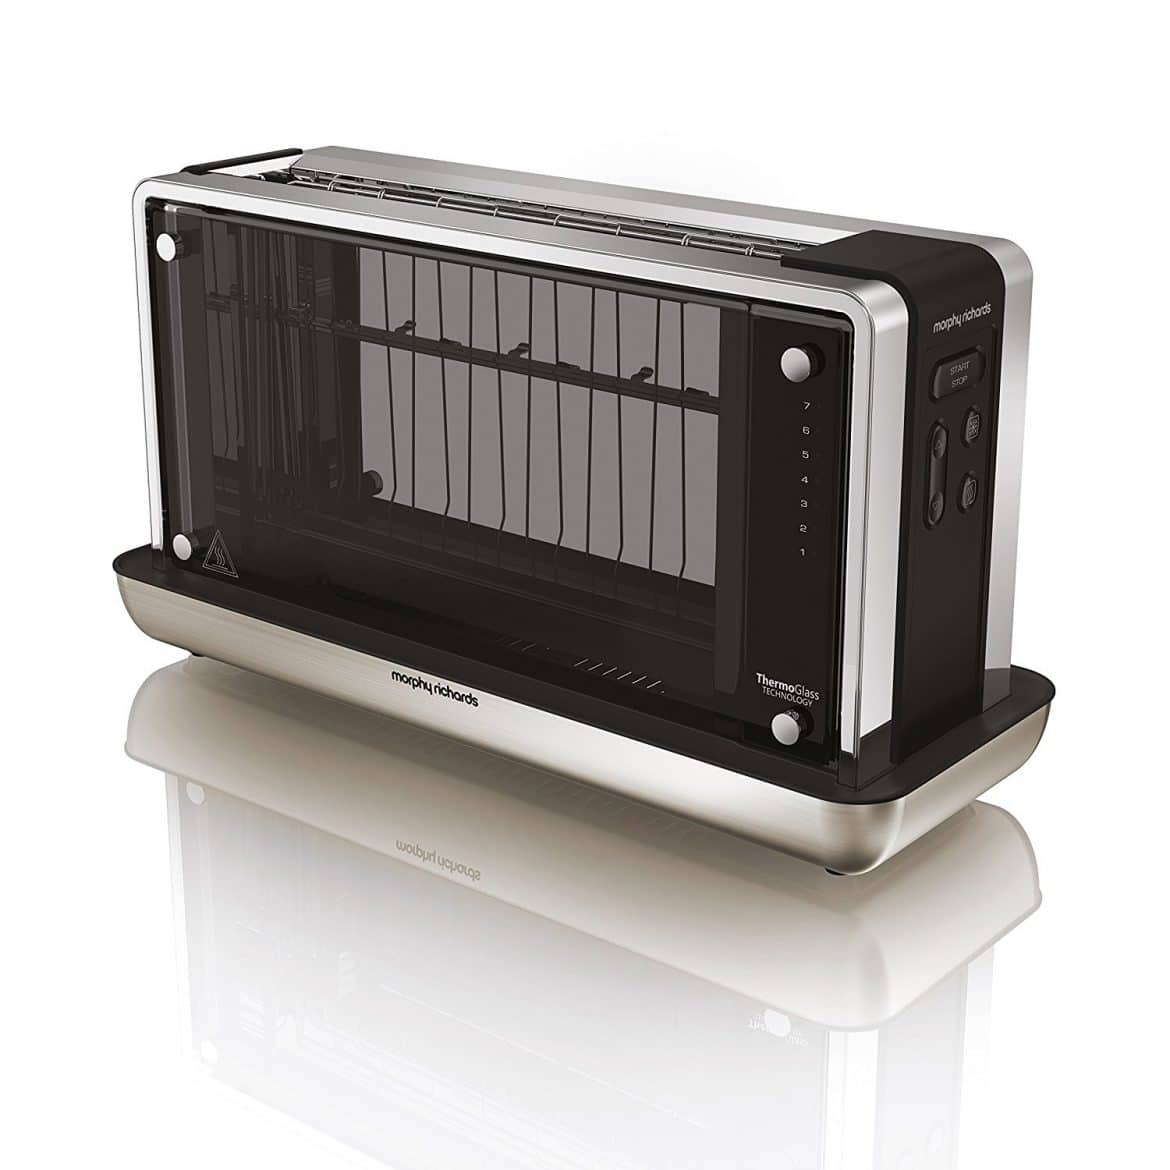 grille-pain Morphy Richards